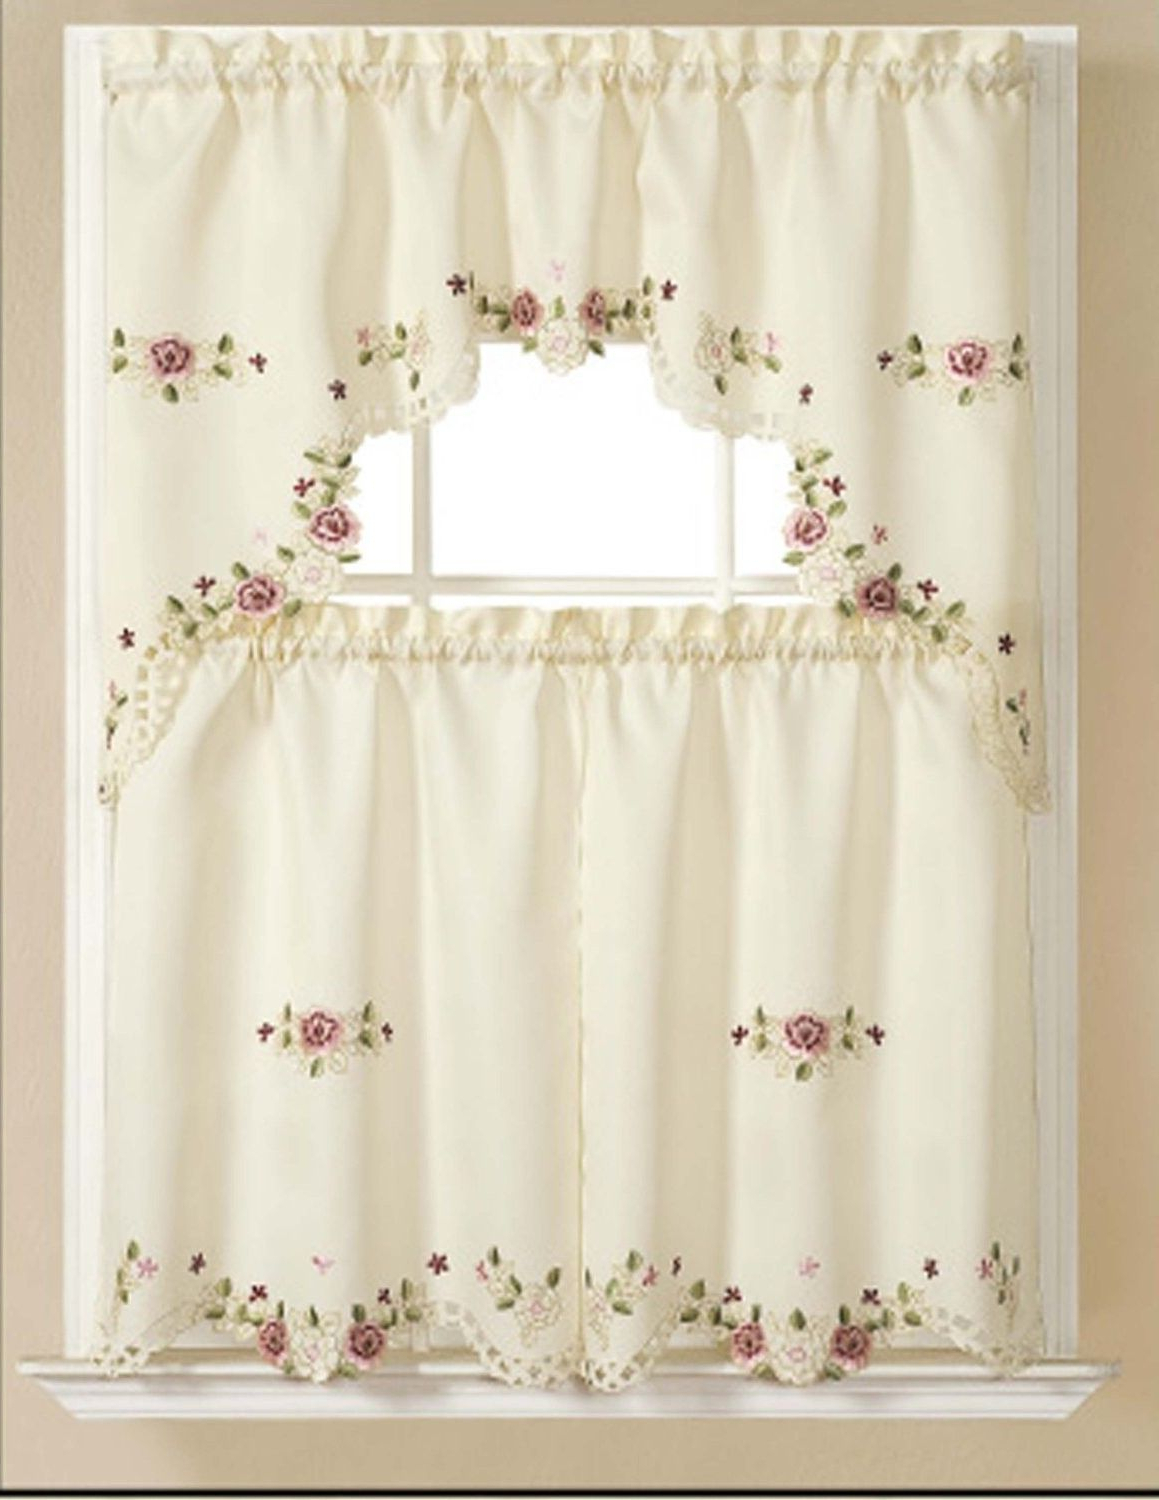 Alisha Elegant Embroidered Kitchen Curtain Swag & Tiers Set With 2021 Floral Lace Rod Pocket Kitchen Curtain Valance And Tiers Sets (View 17 of 20)